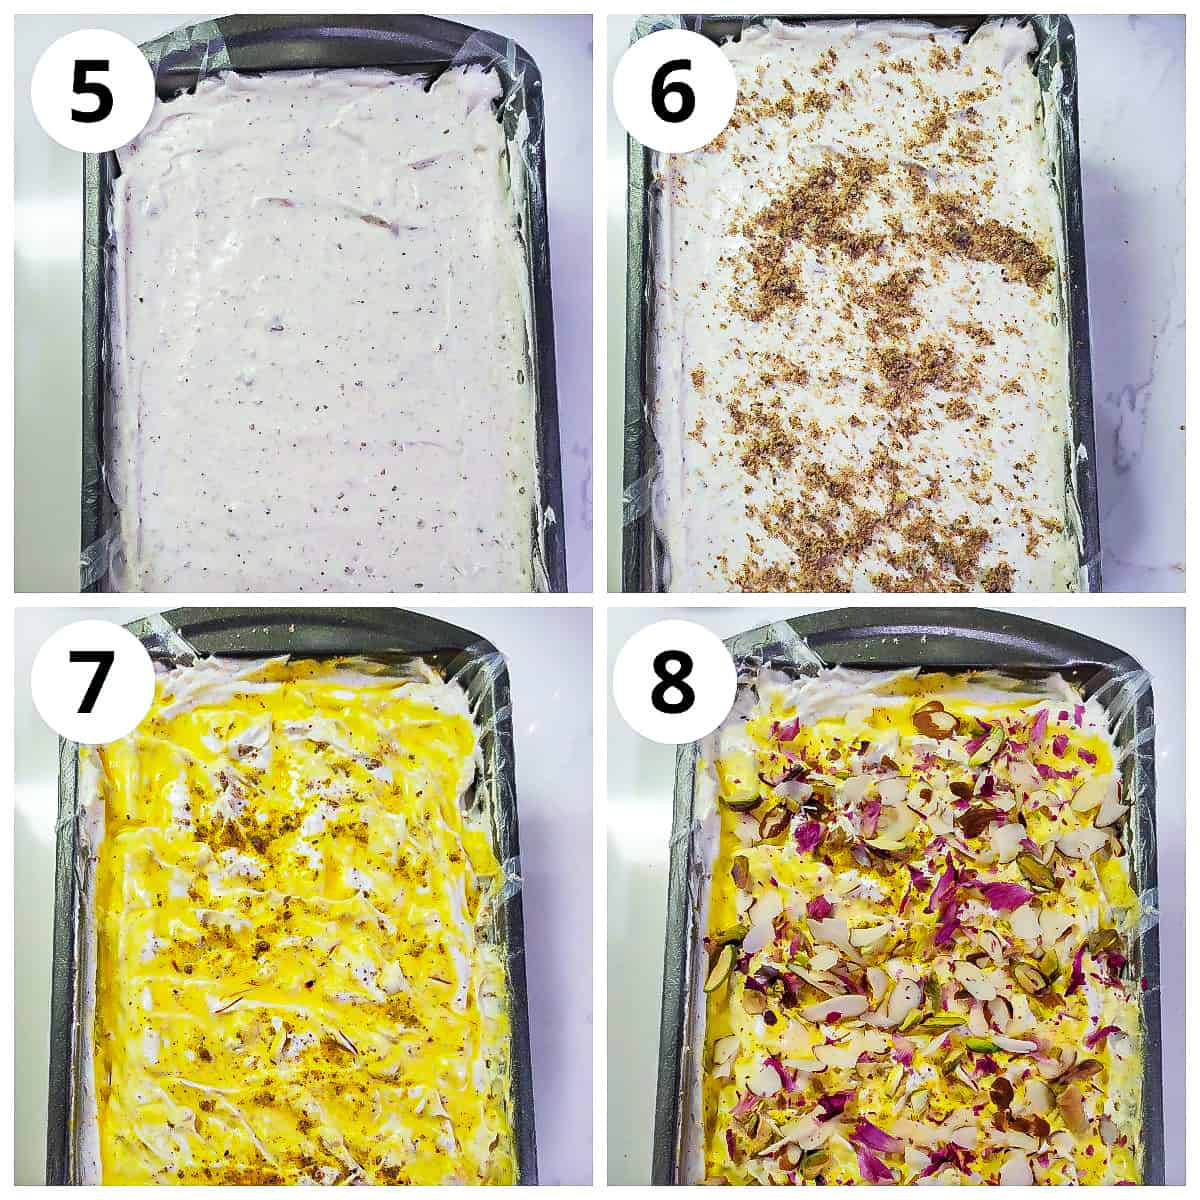 Steps for garnishing and freezing thandai icecream in a bread pan